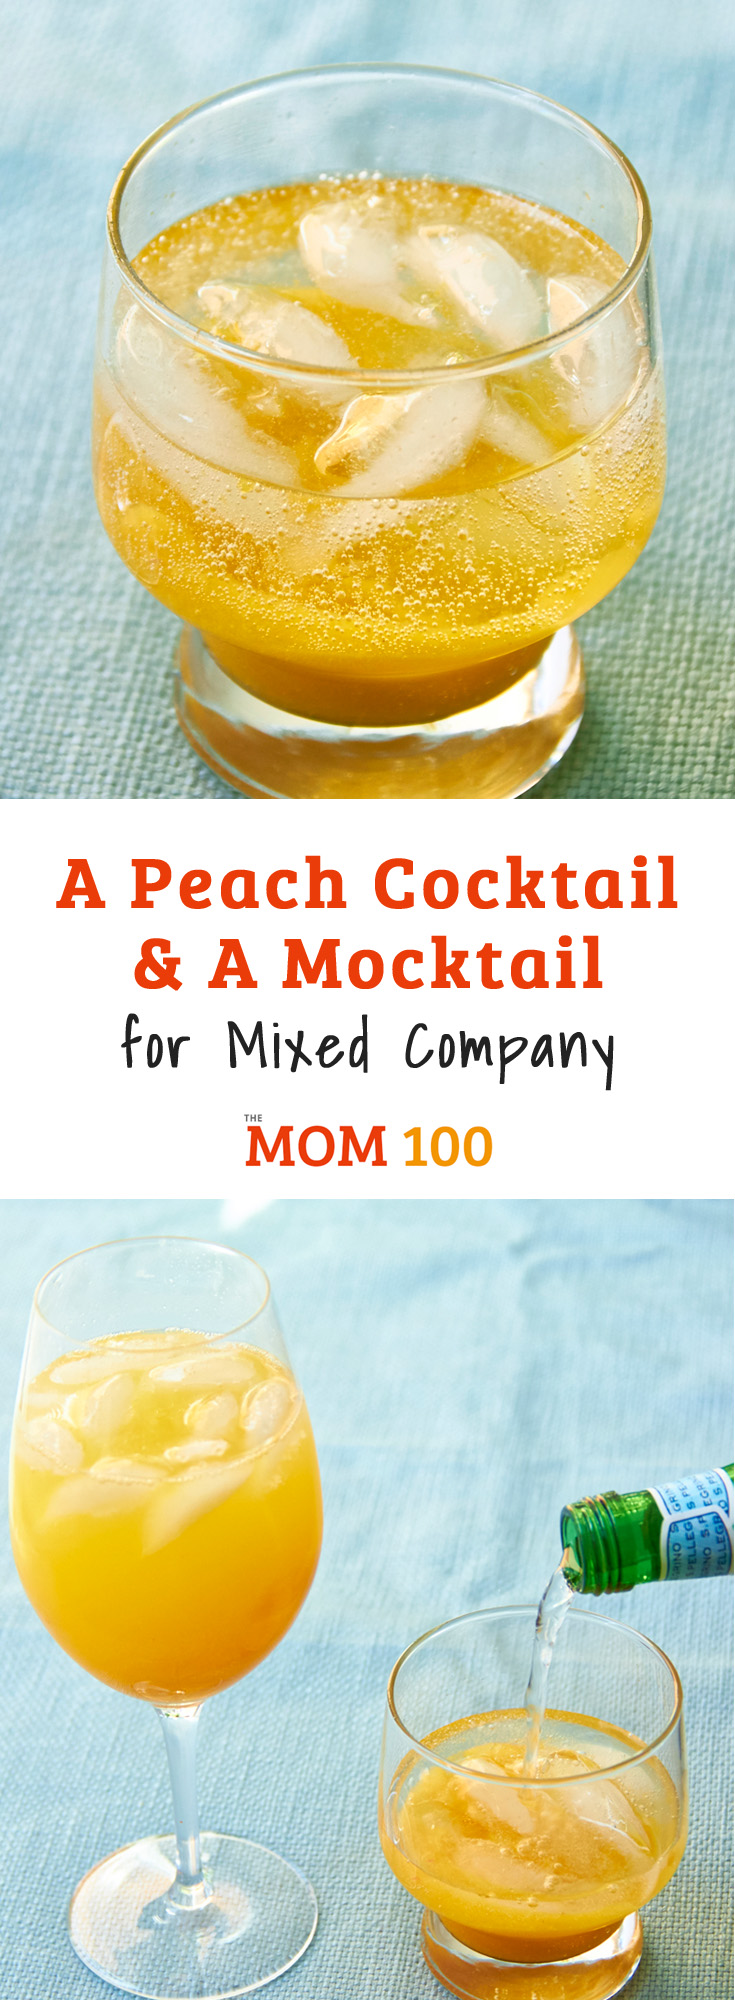 A refreshing Peach-Mango beverage, perfect for mixed company. Delicious with sparkling wine, or substitute with sparkling water to make it kid-friendly.